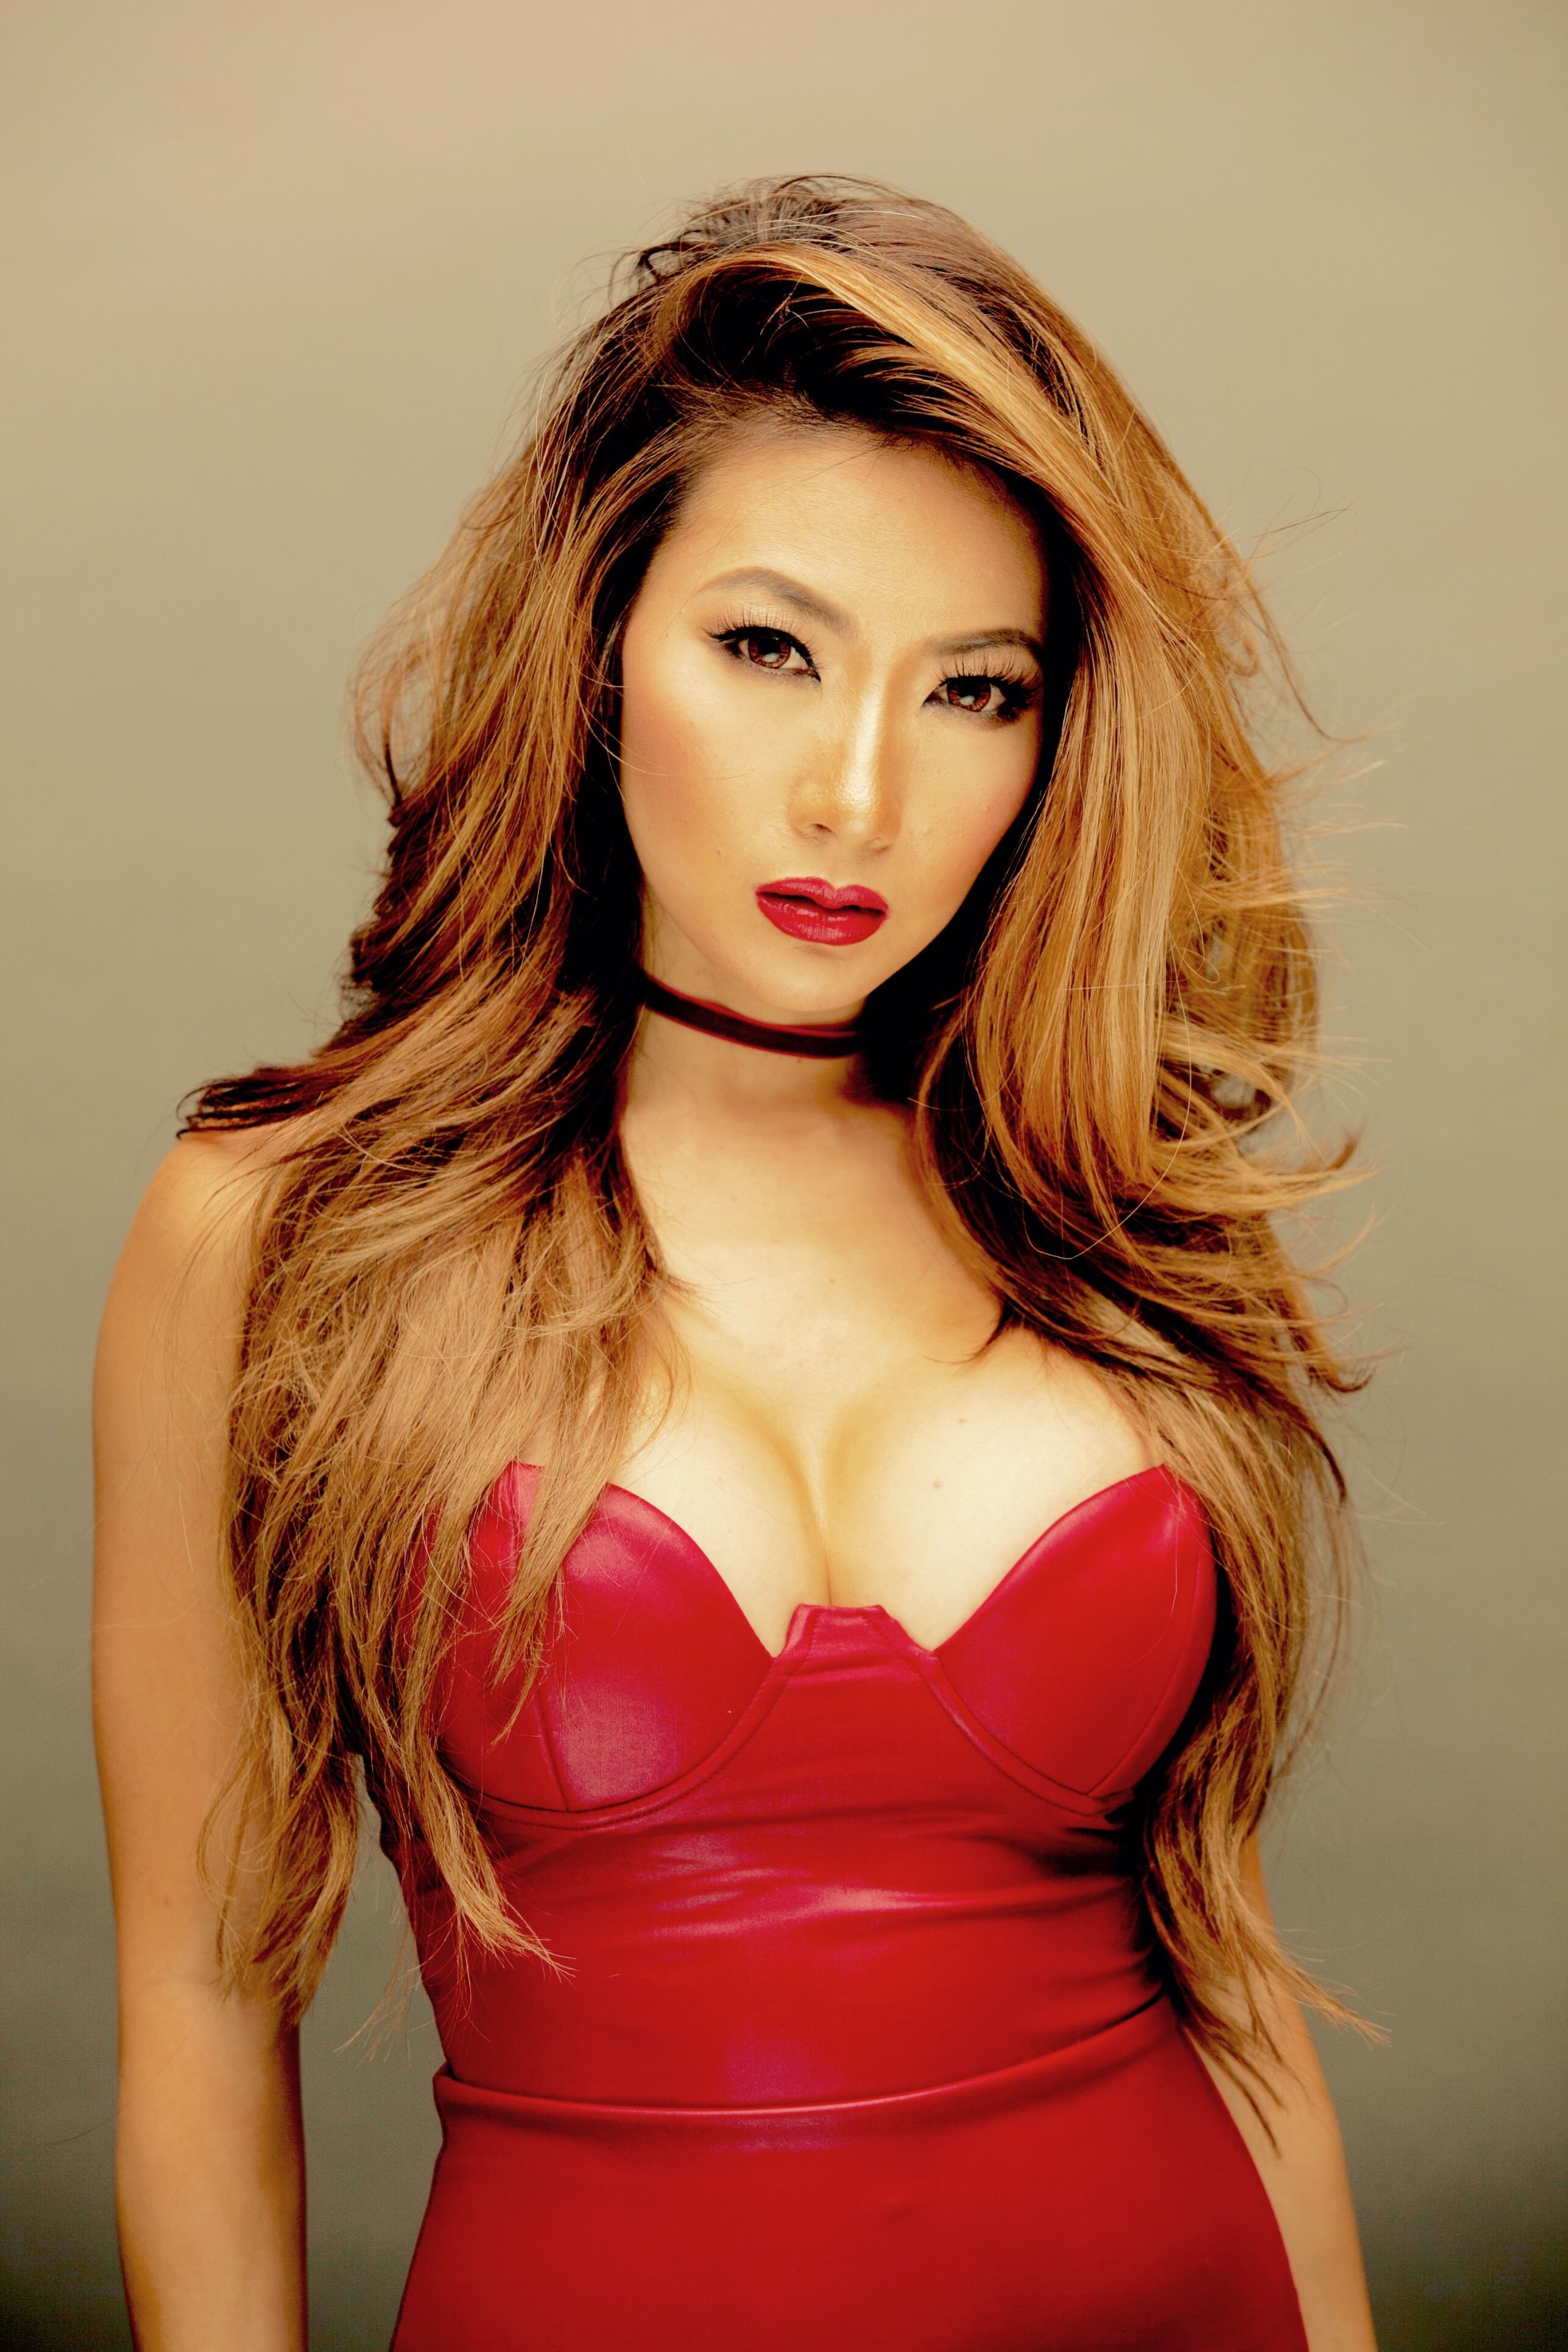 asian singles in kirkland Meet single asian men in kirkland are you single in kirkland and searching for a single asian man to be your true love or are you just trying to find a new friend to date in kirkland.